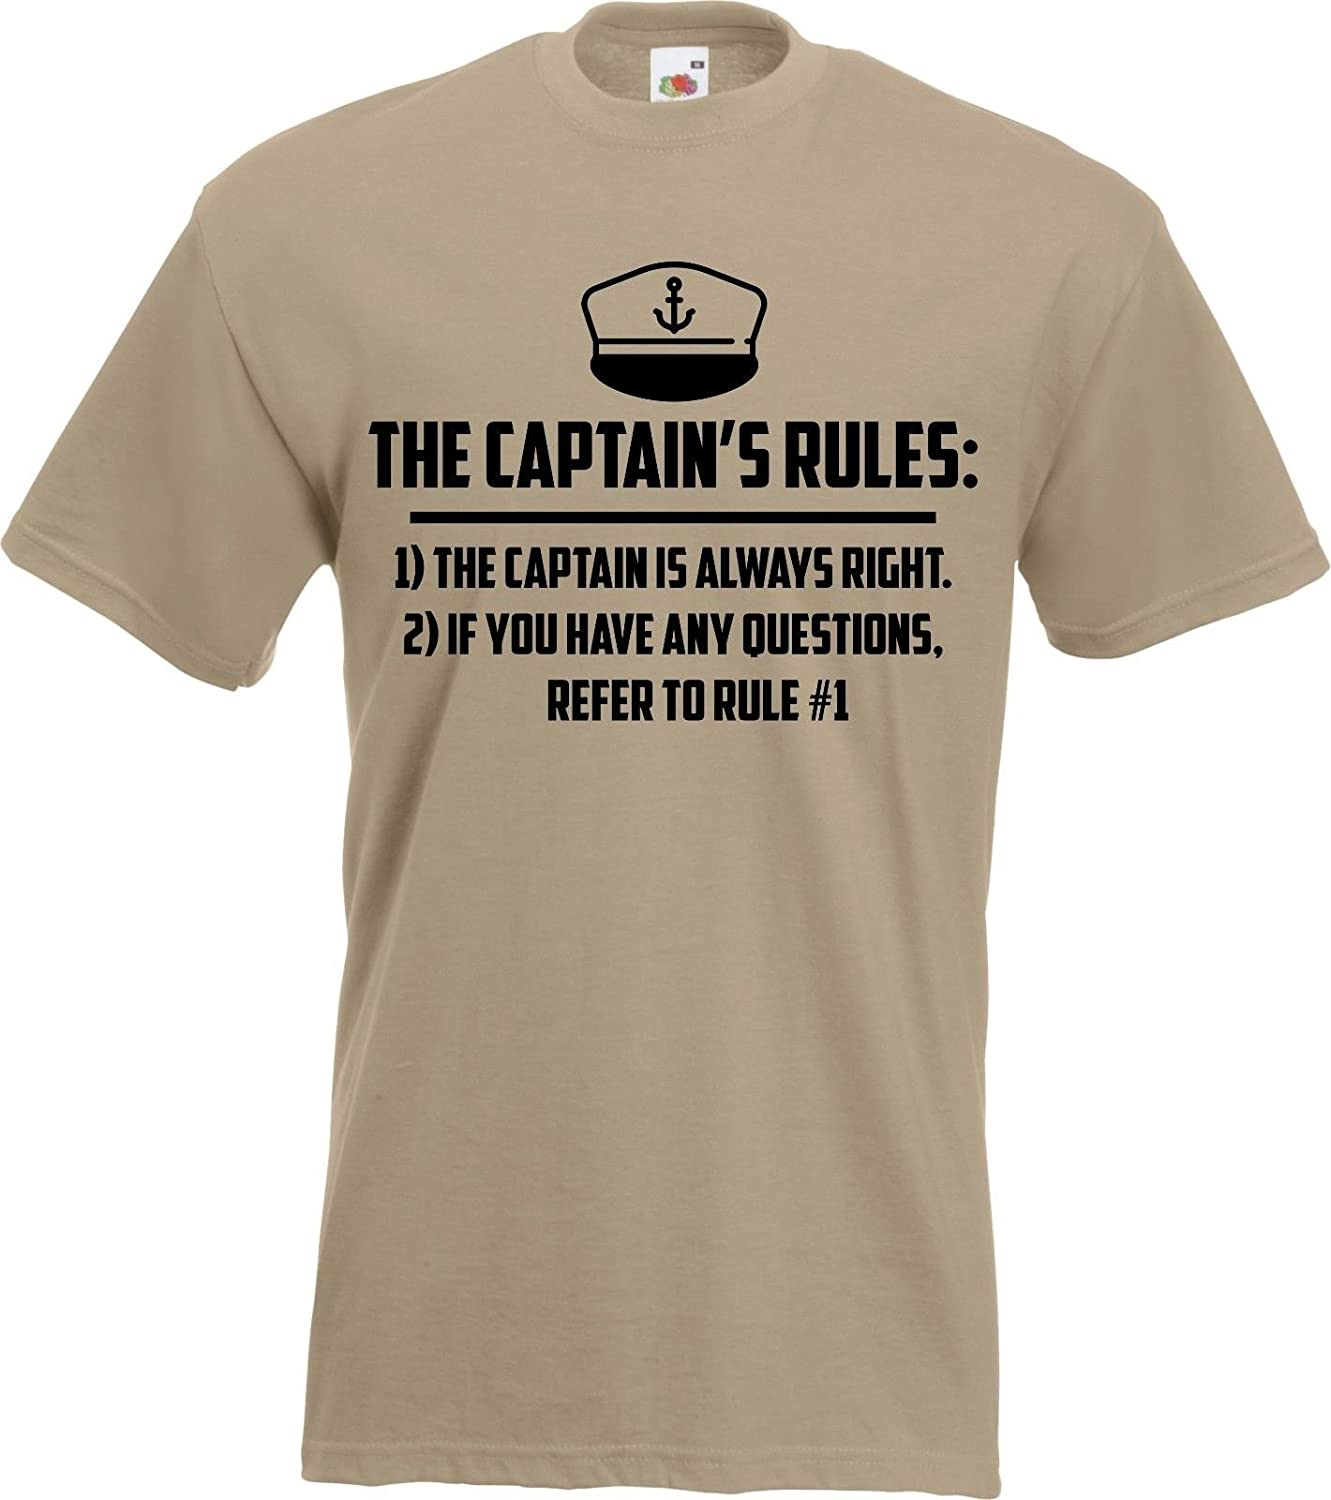 bde19c0a Captain Rules Funny Boat Skipper Sailing T-Shirt Gift Boating Yacht:  Amazon.co.uk: Clothing